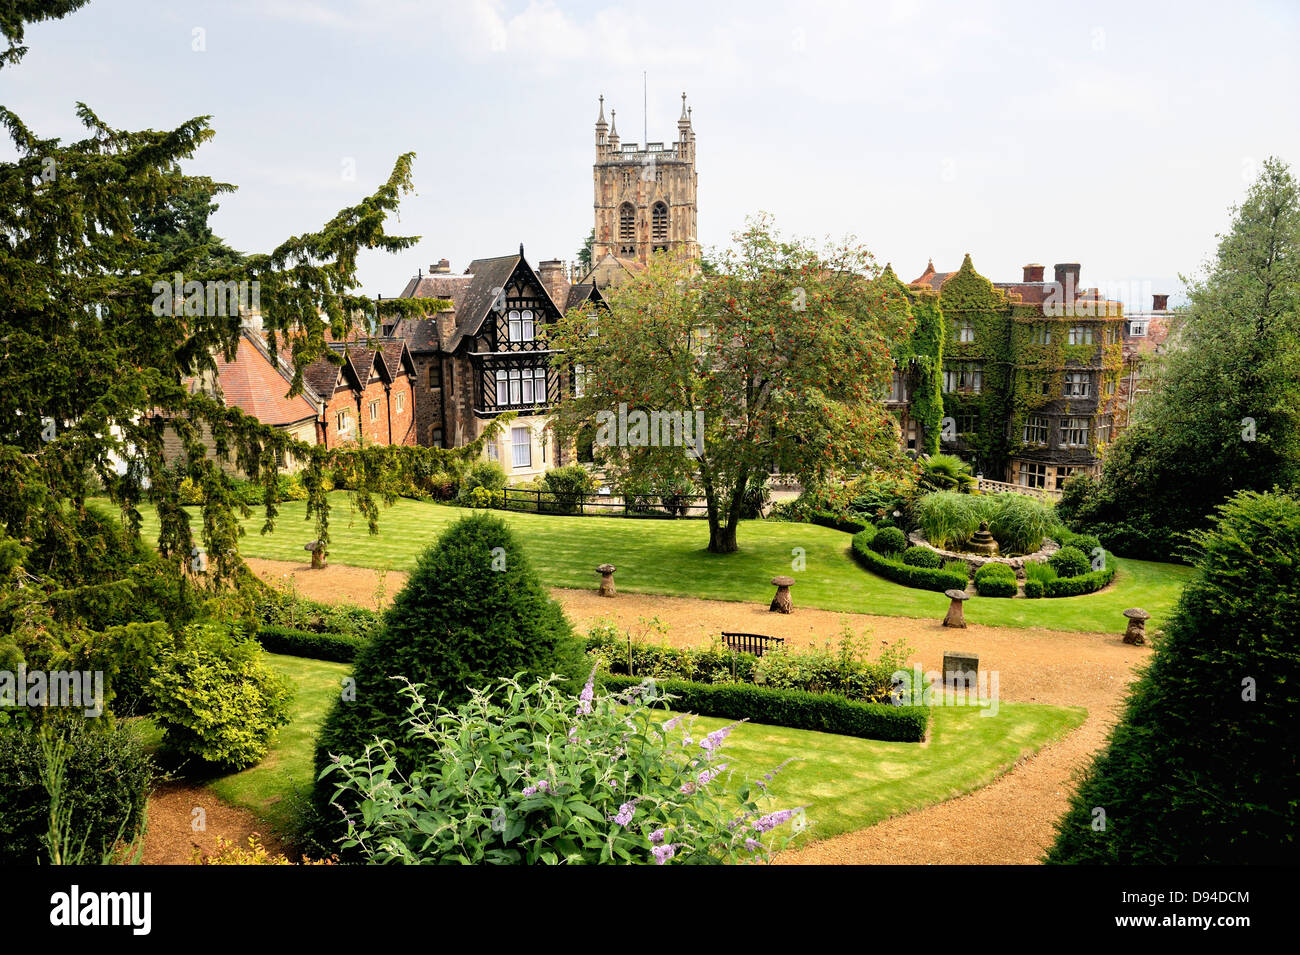 Great Malvern, Worcestershire, England. The tower of the Priory Church of St. Mary and St. Michael rises behind - Stock Image